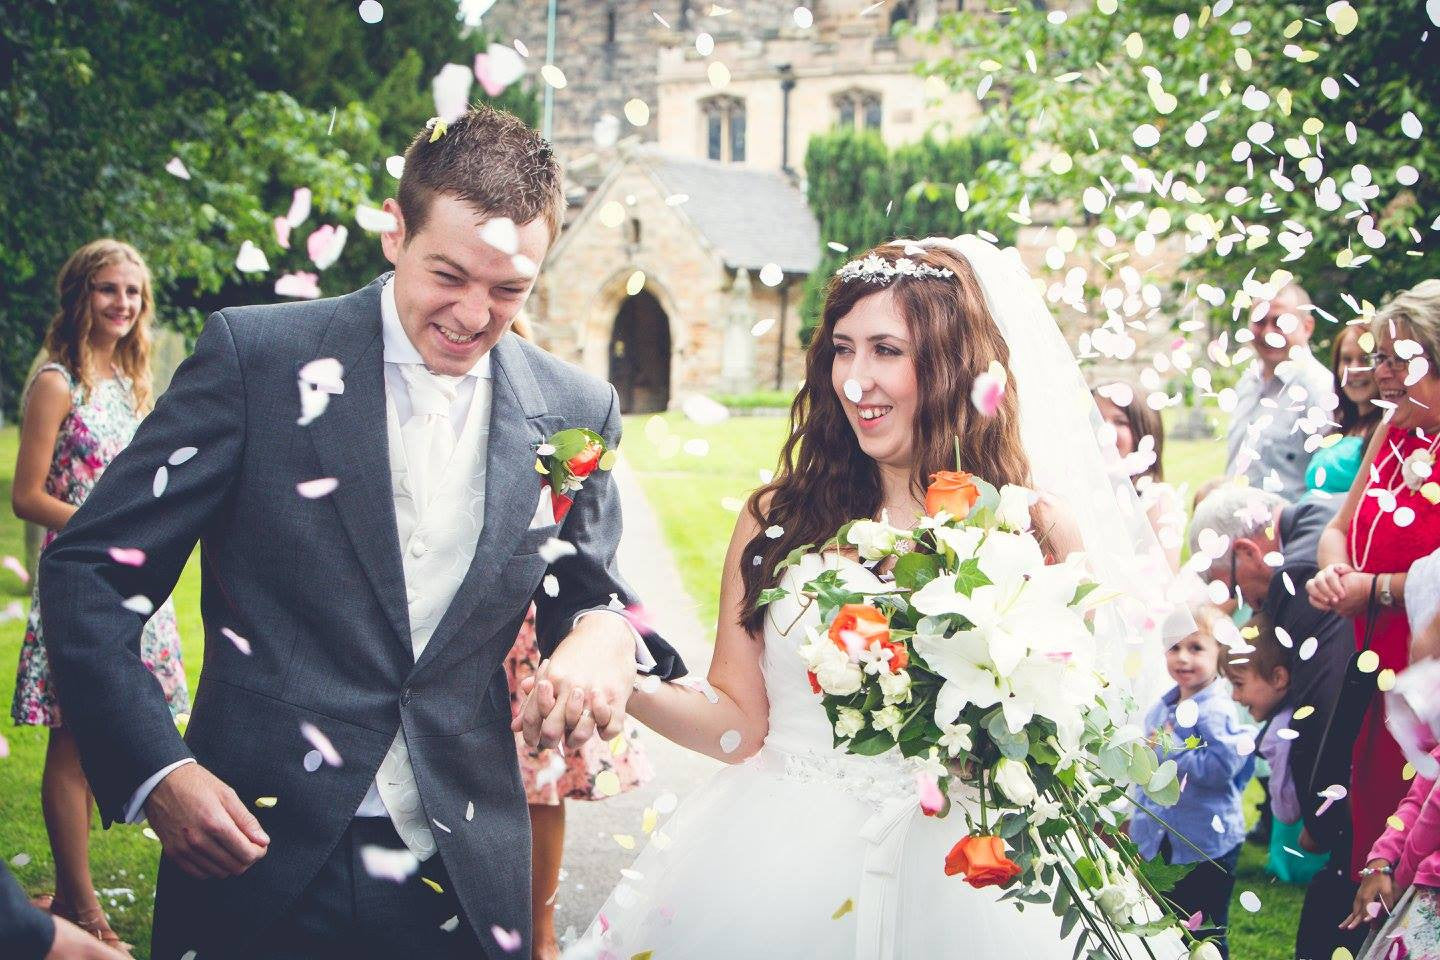 Bride and Groom with confetti and wedding flowers.